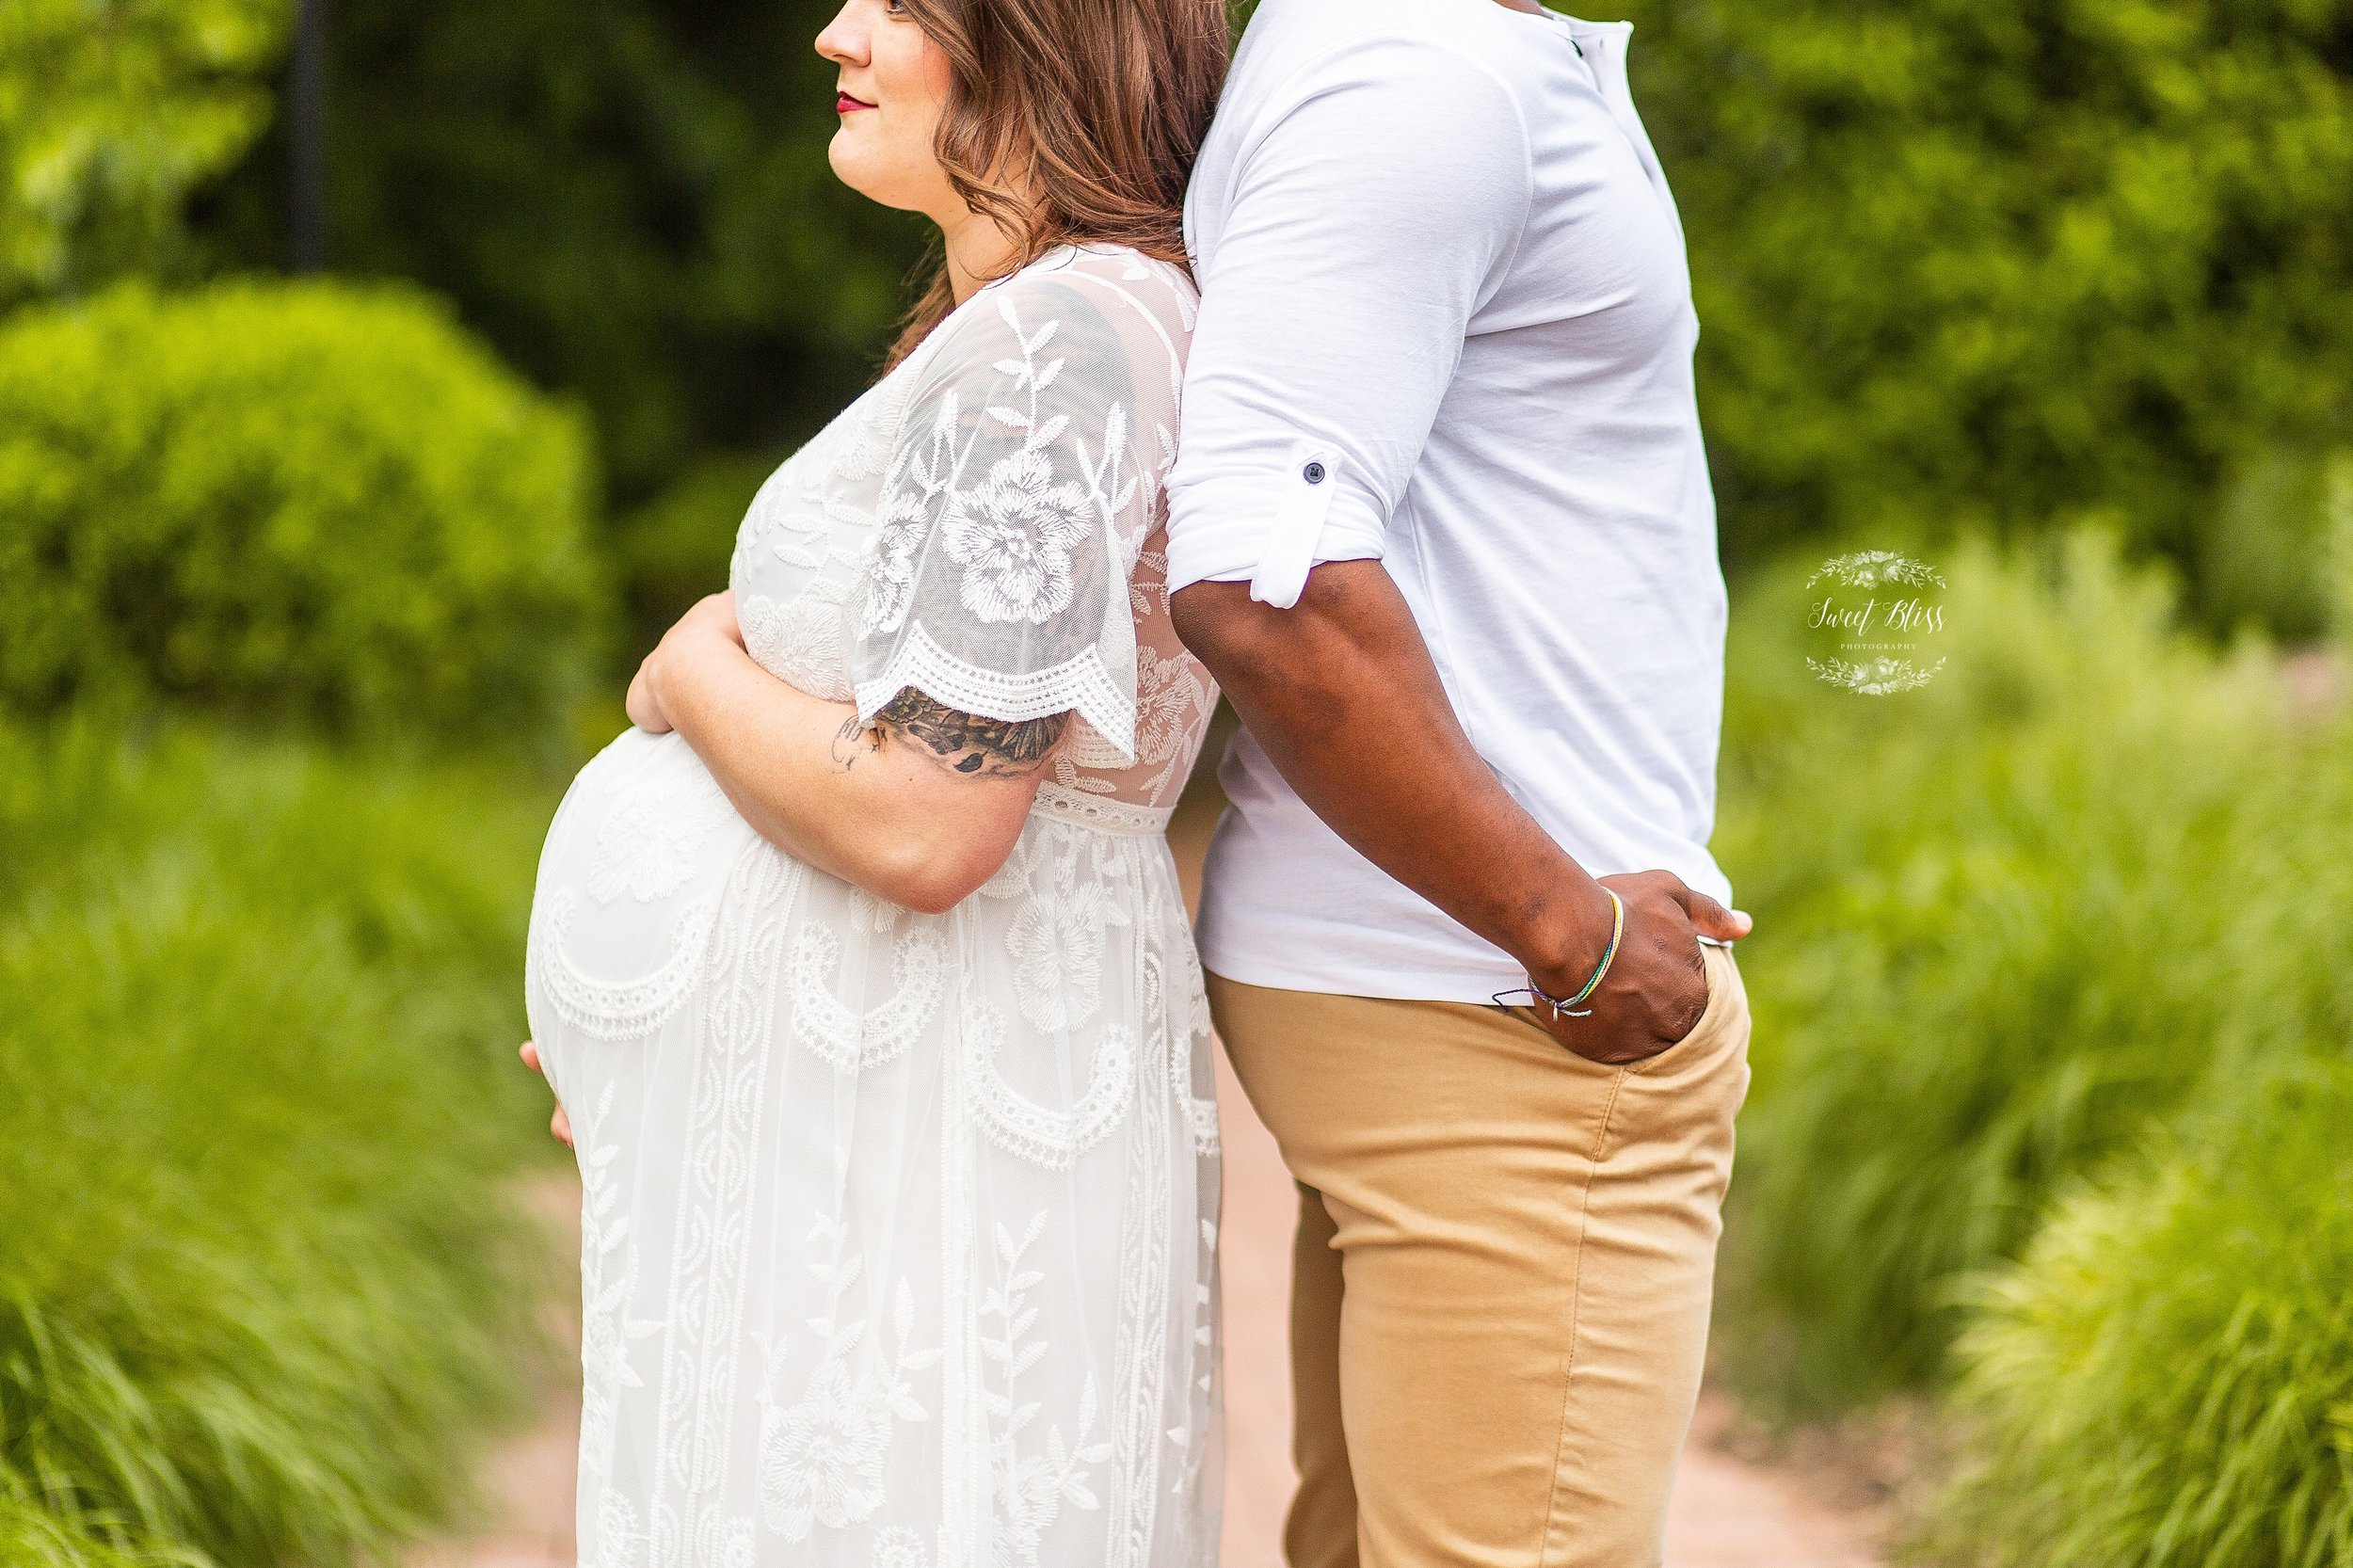 maternitymarylandPhotographer_newbornphoto_sweetblissphotography-40.jpg